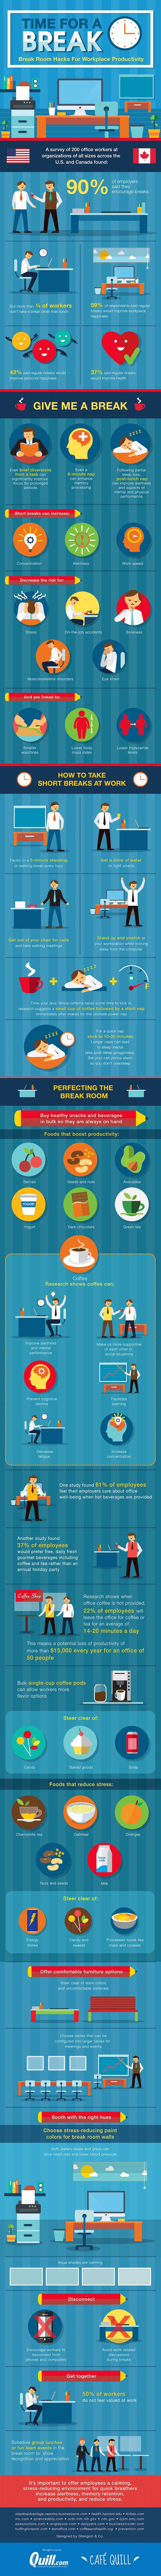 How to improve our productivity in the office/ How to design the break rooms to effectively reduce stress [Infographic], via @HubSpot